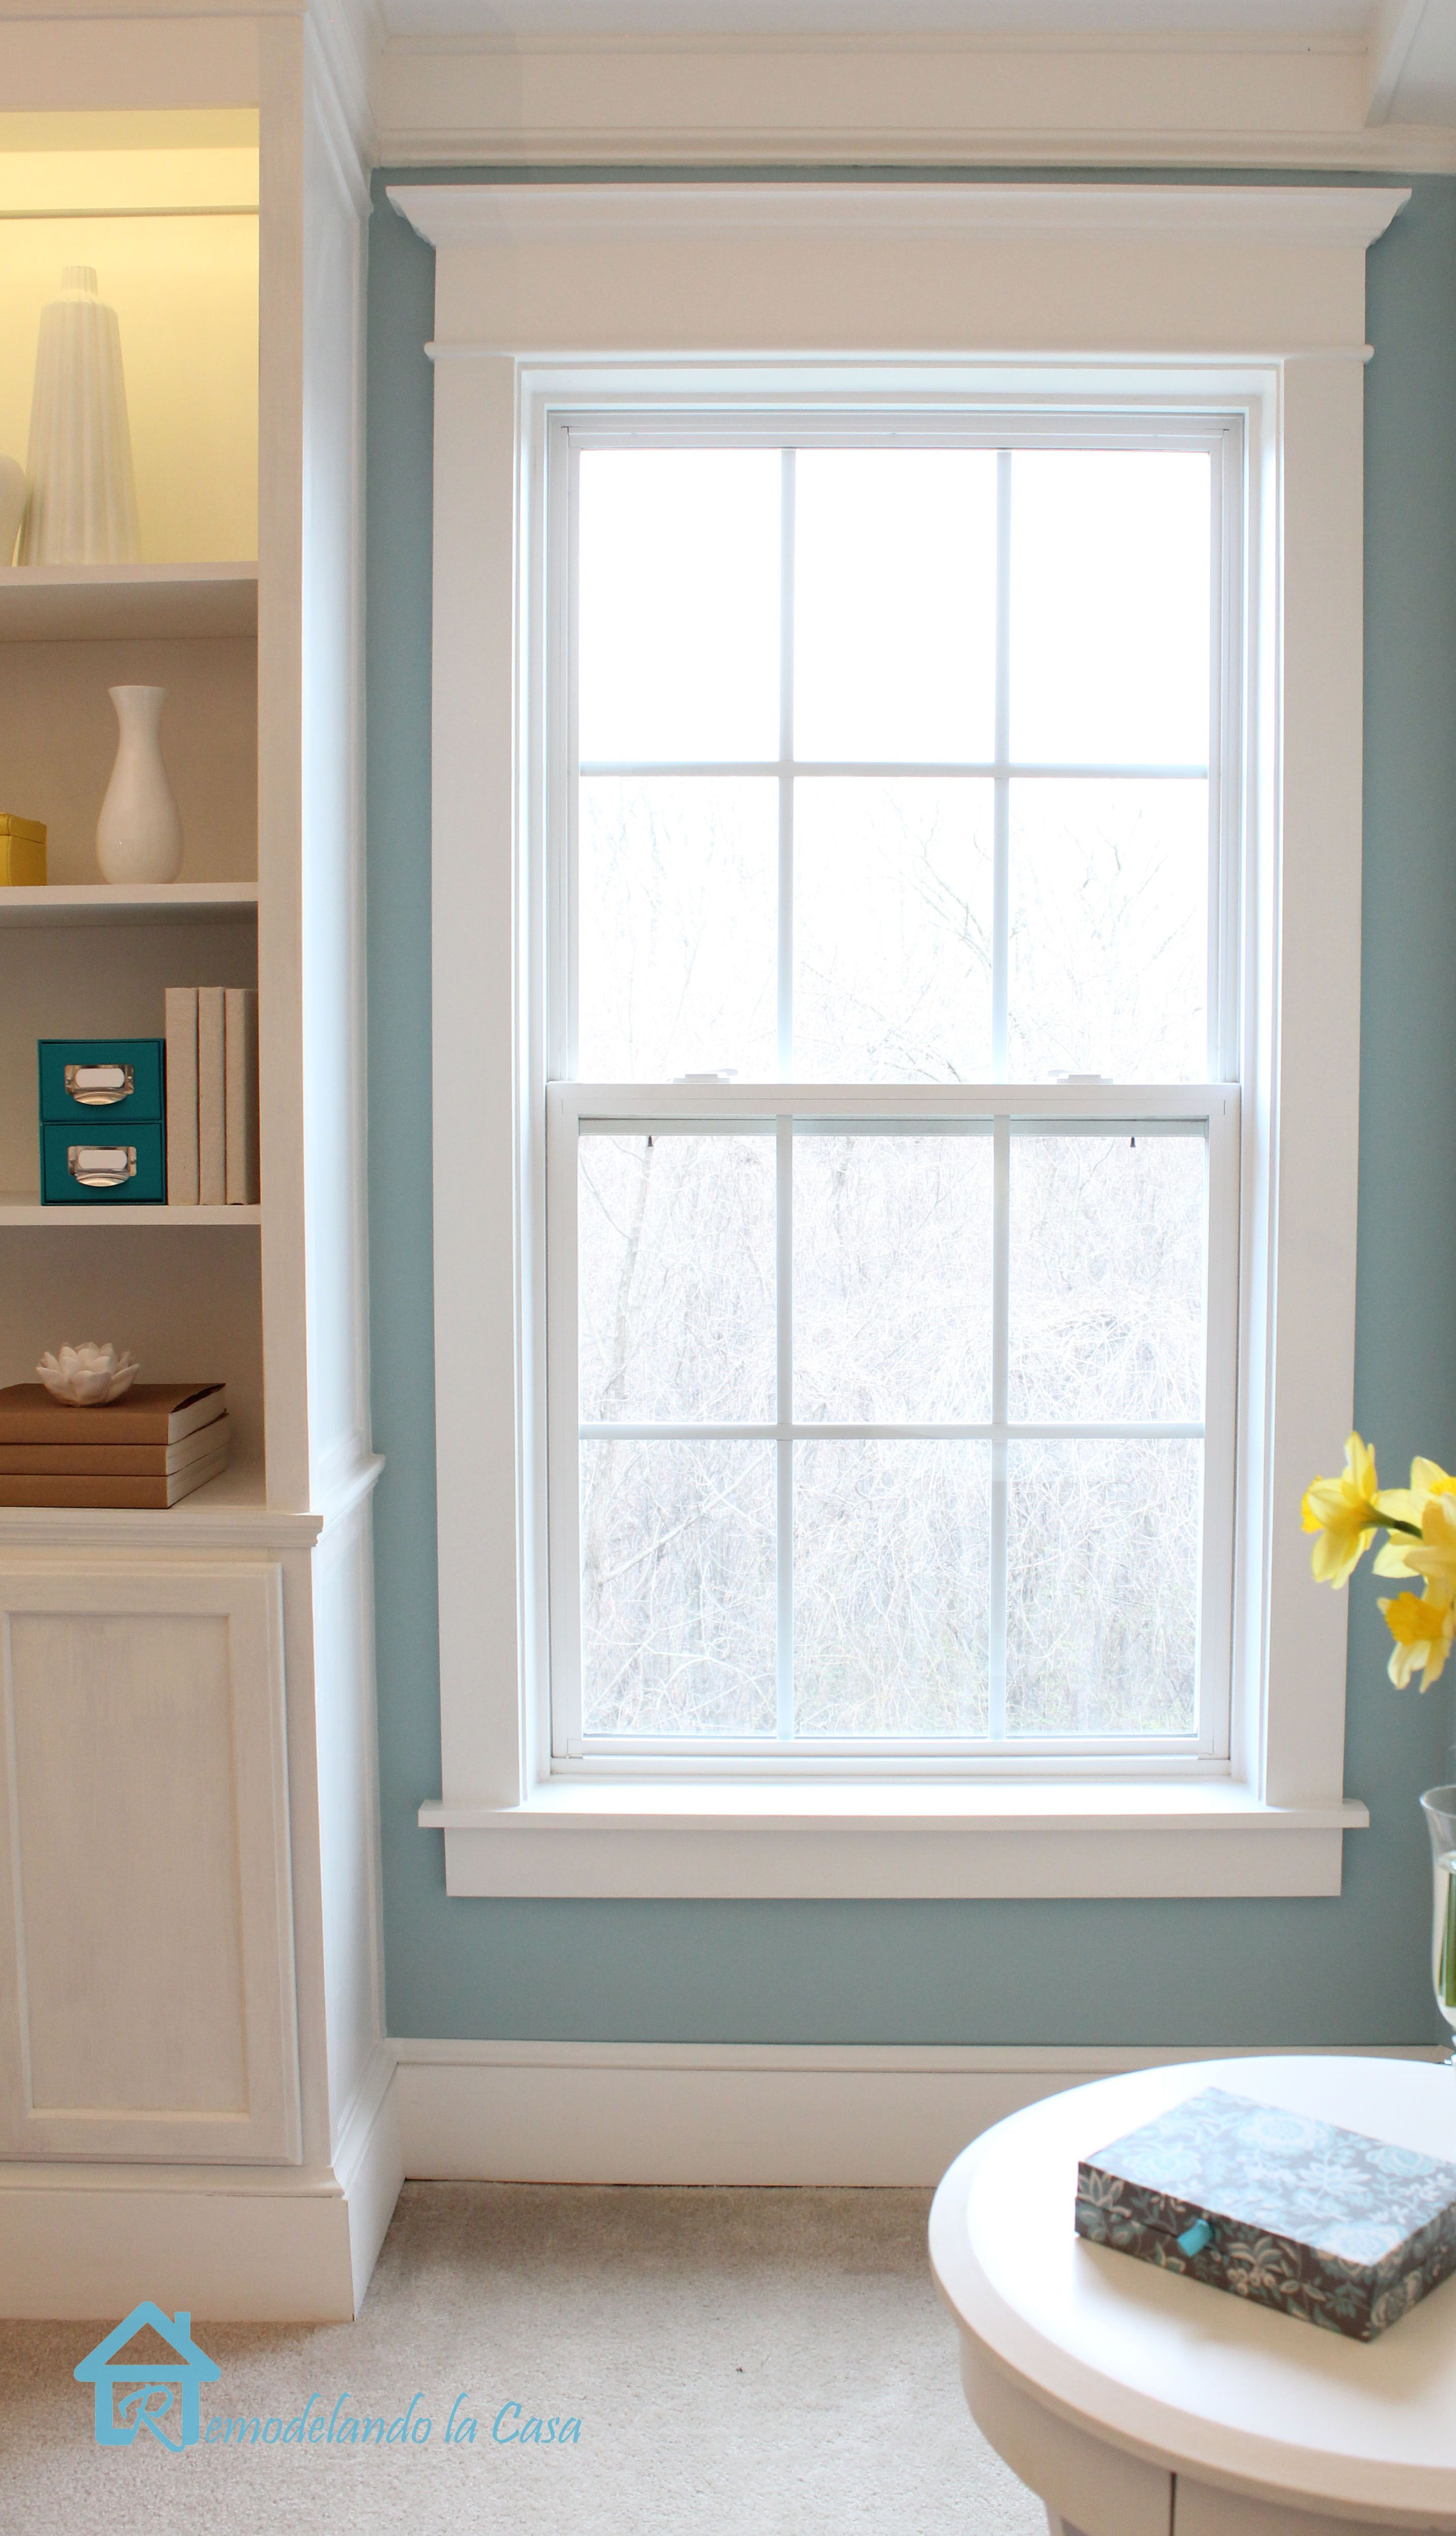 Diy window trim and step by step instructions diy diyprojects diy window trim and step by step instructions diy diyprojects solutioingenieria Images